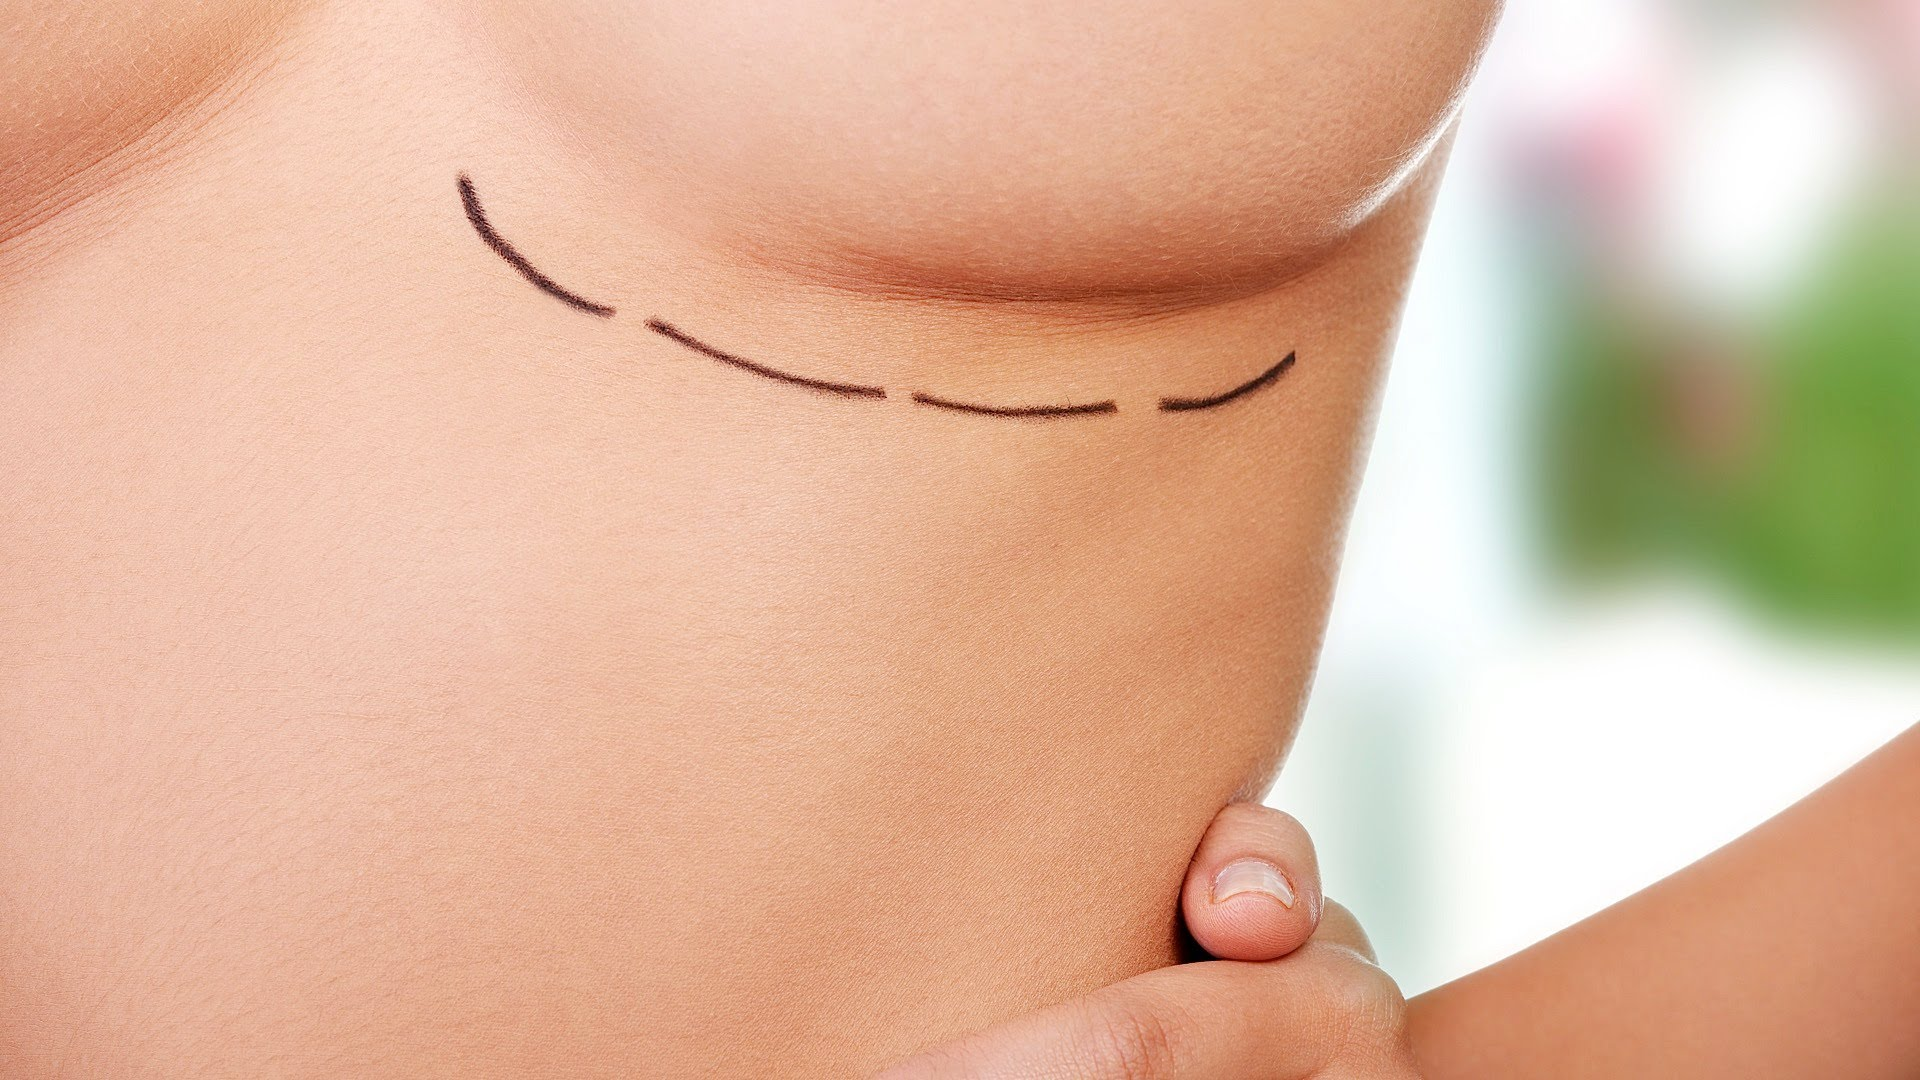 Dissatisfaction with breasts may mean fewer self-checks for cancer